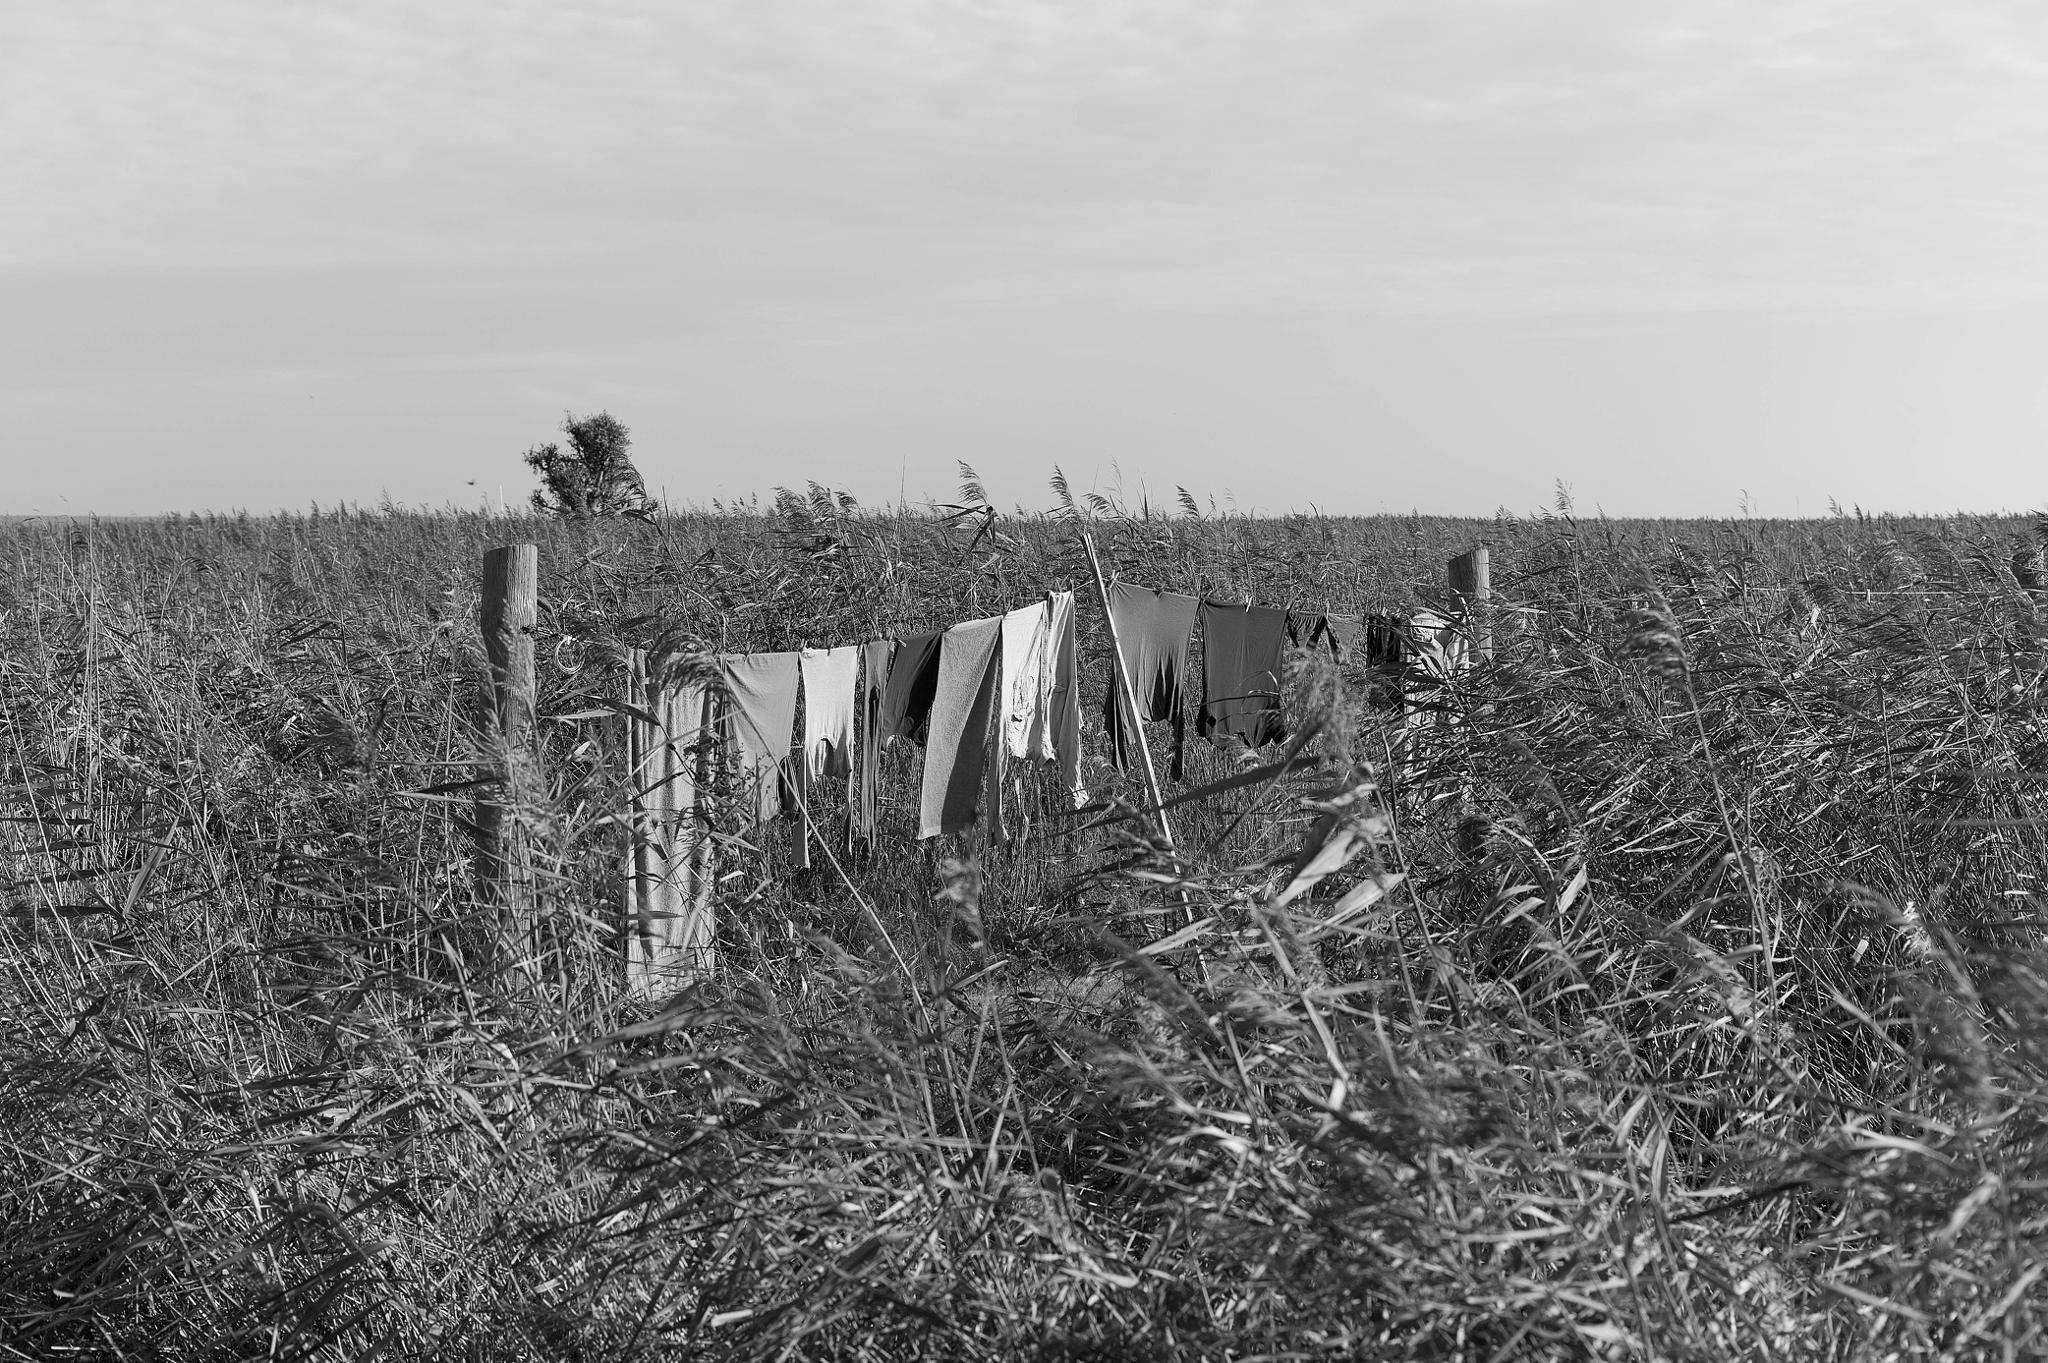 Laundry drying in the reed, Germany by PeWe